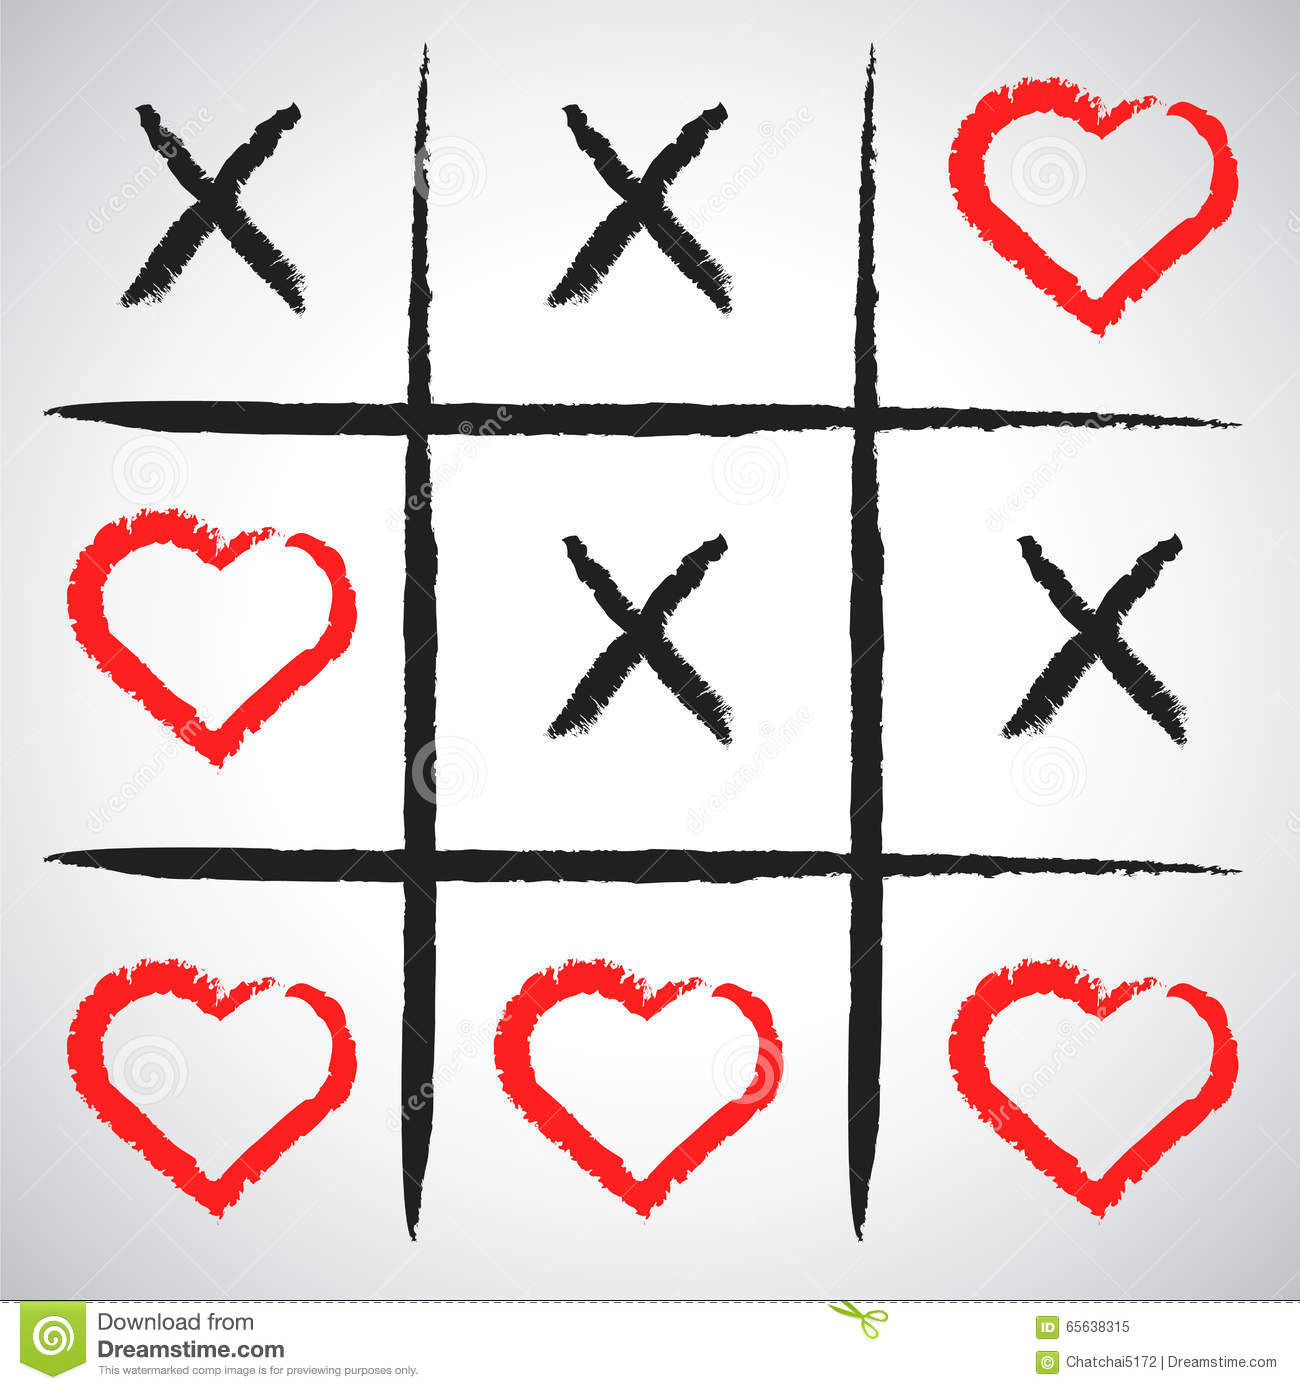 Simple Game X O Gamehand Drawn Tic Tac Toe Elementshappy Val